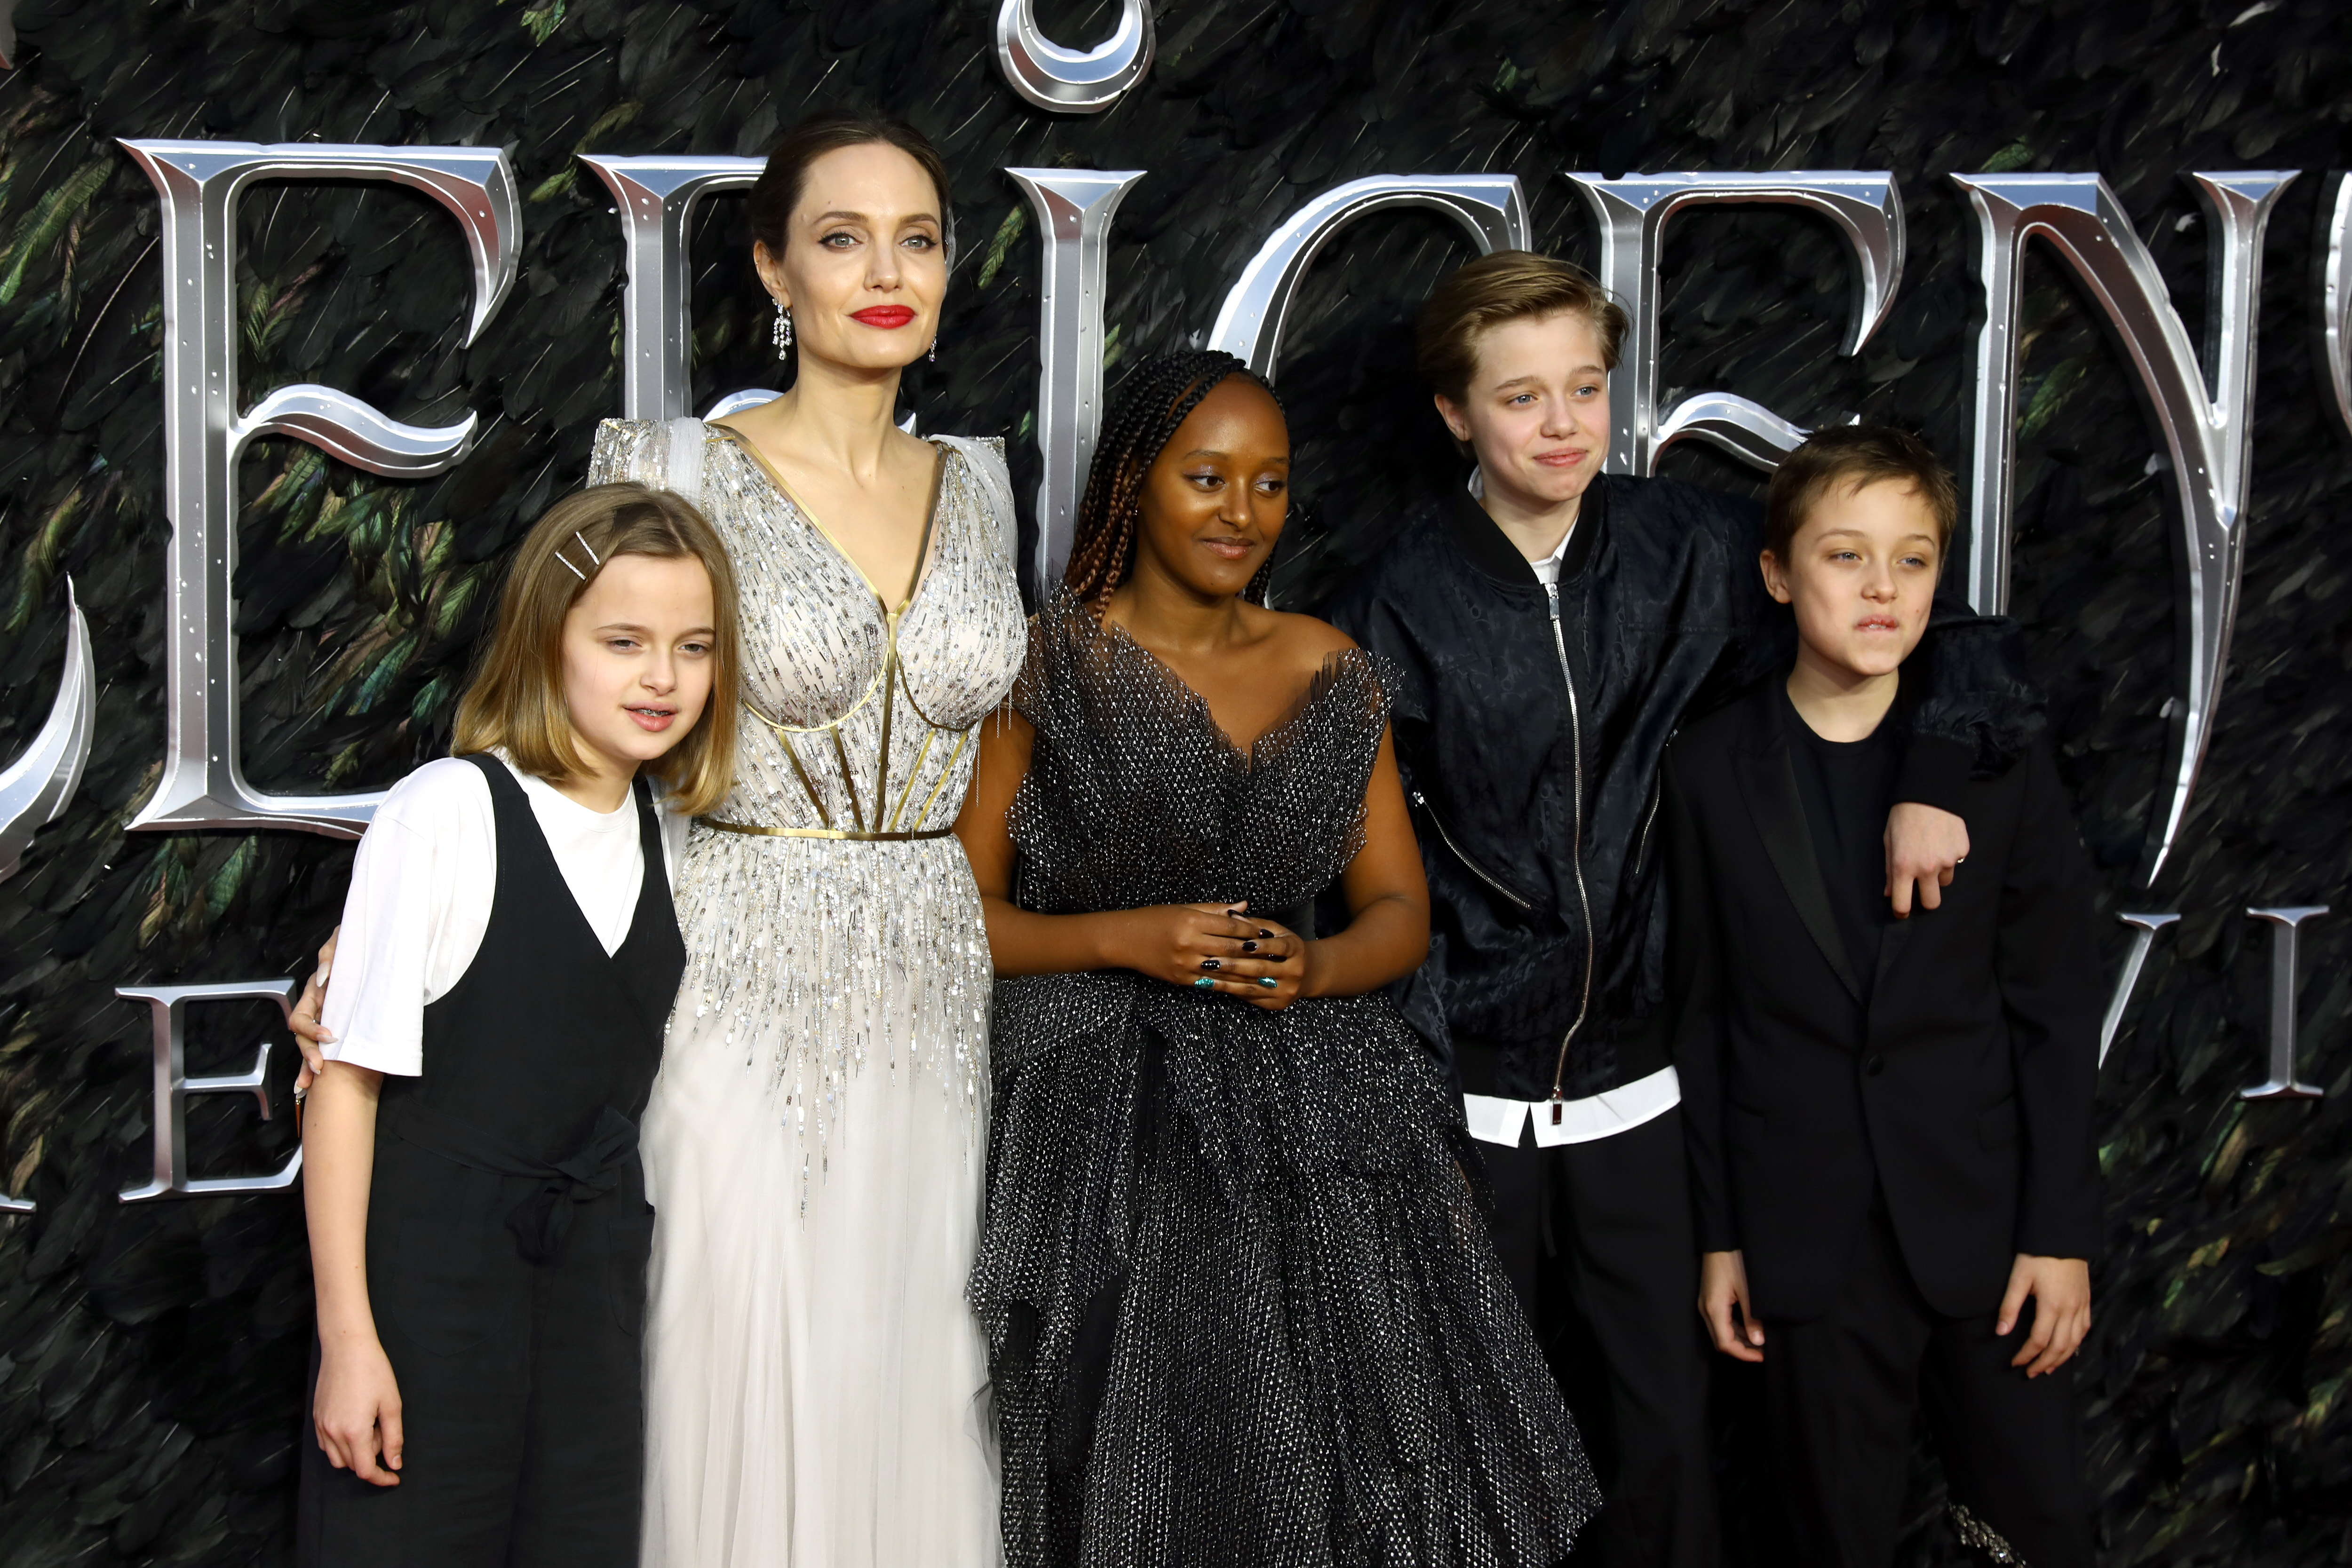 Angelina Jolie REVEALS none of her and Brad Pitt's 6 kids 'want to be actors'; Here's what they plan to do